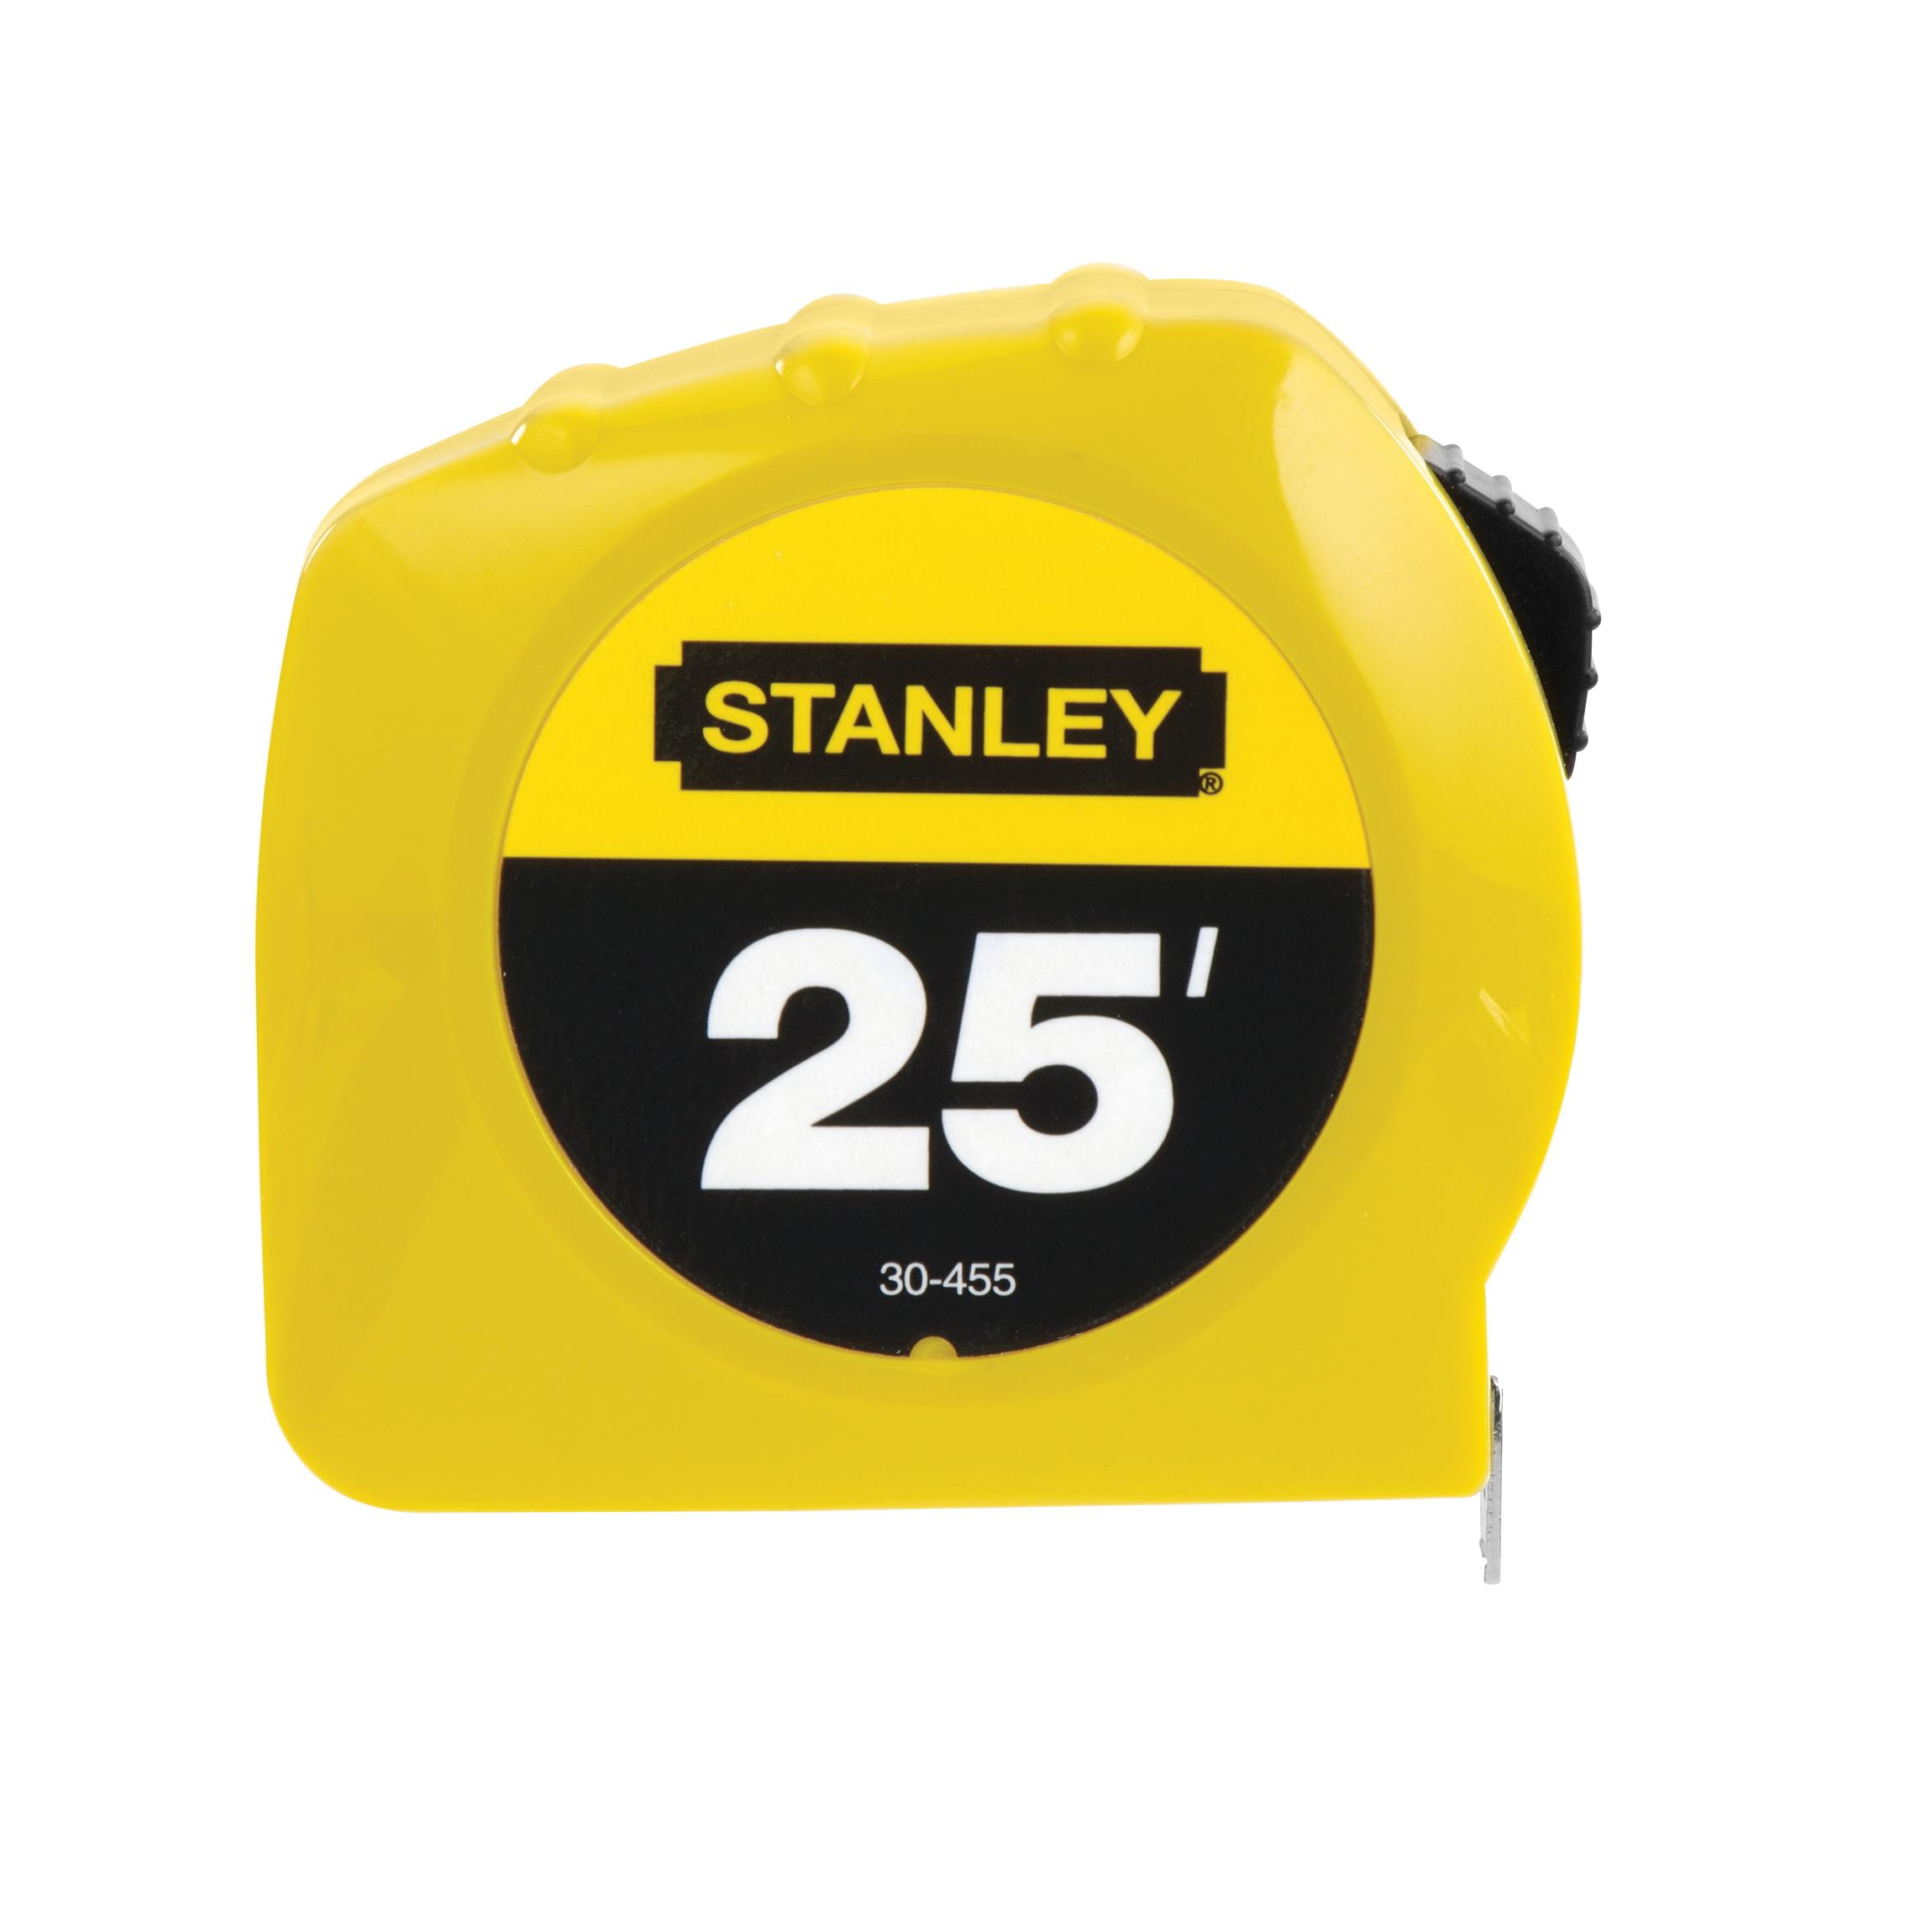 Stanley® 30-455 Tape Rule, 25 ft L x 1 in W Blade, Polymer Coated Steel, Imperial